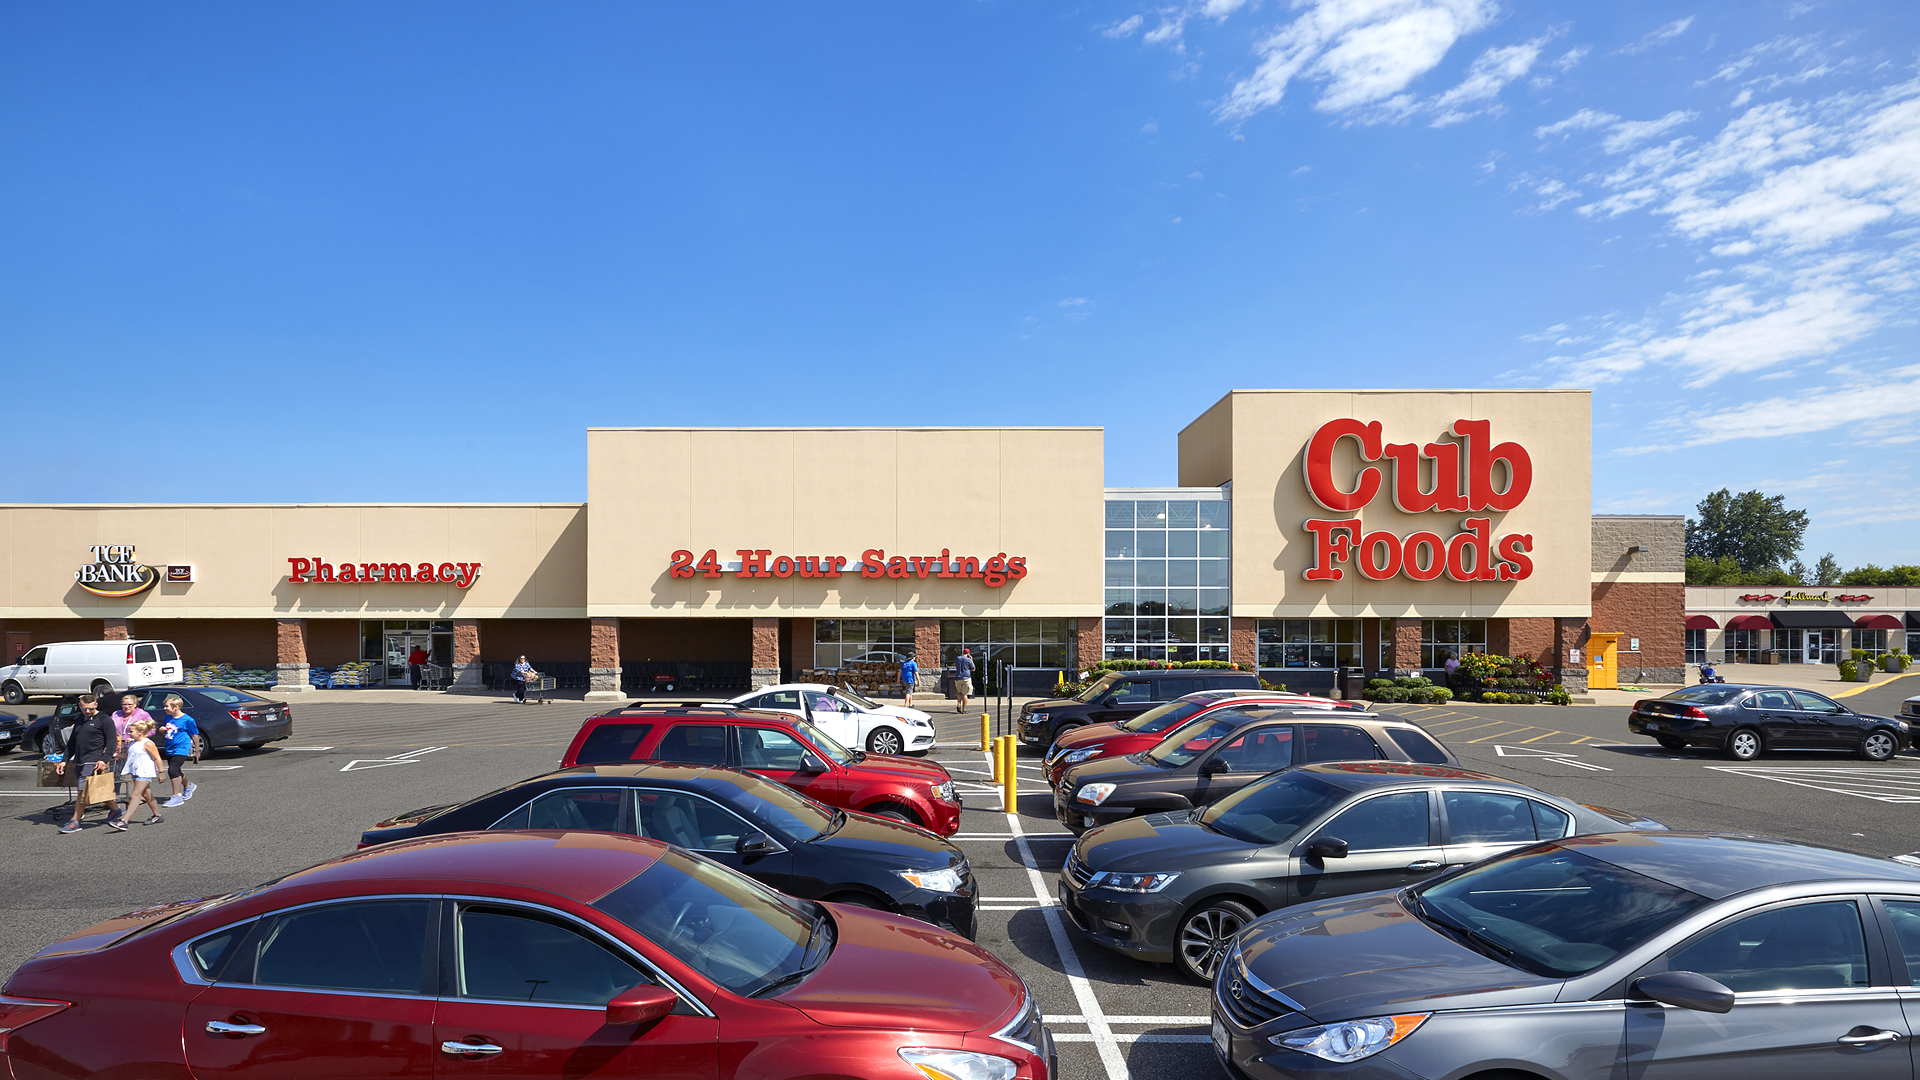 Blaine Town Shopping Center Blaine MN front exterior of anchor Cub Foods